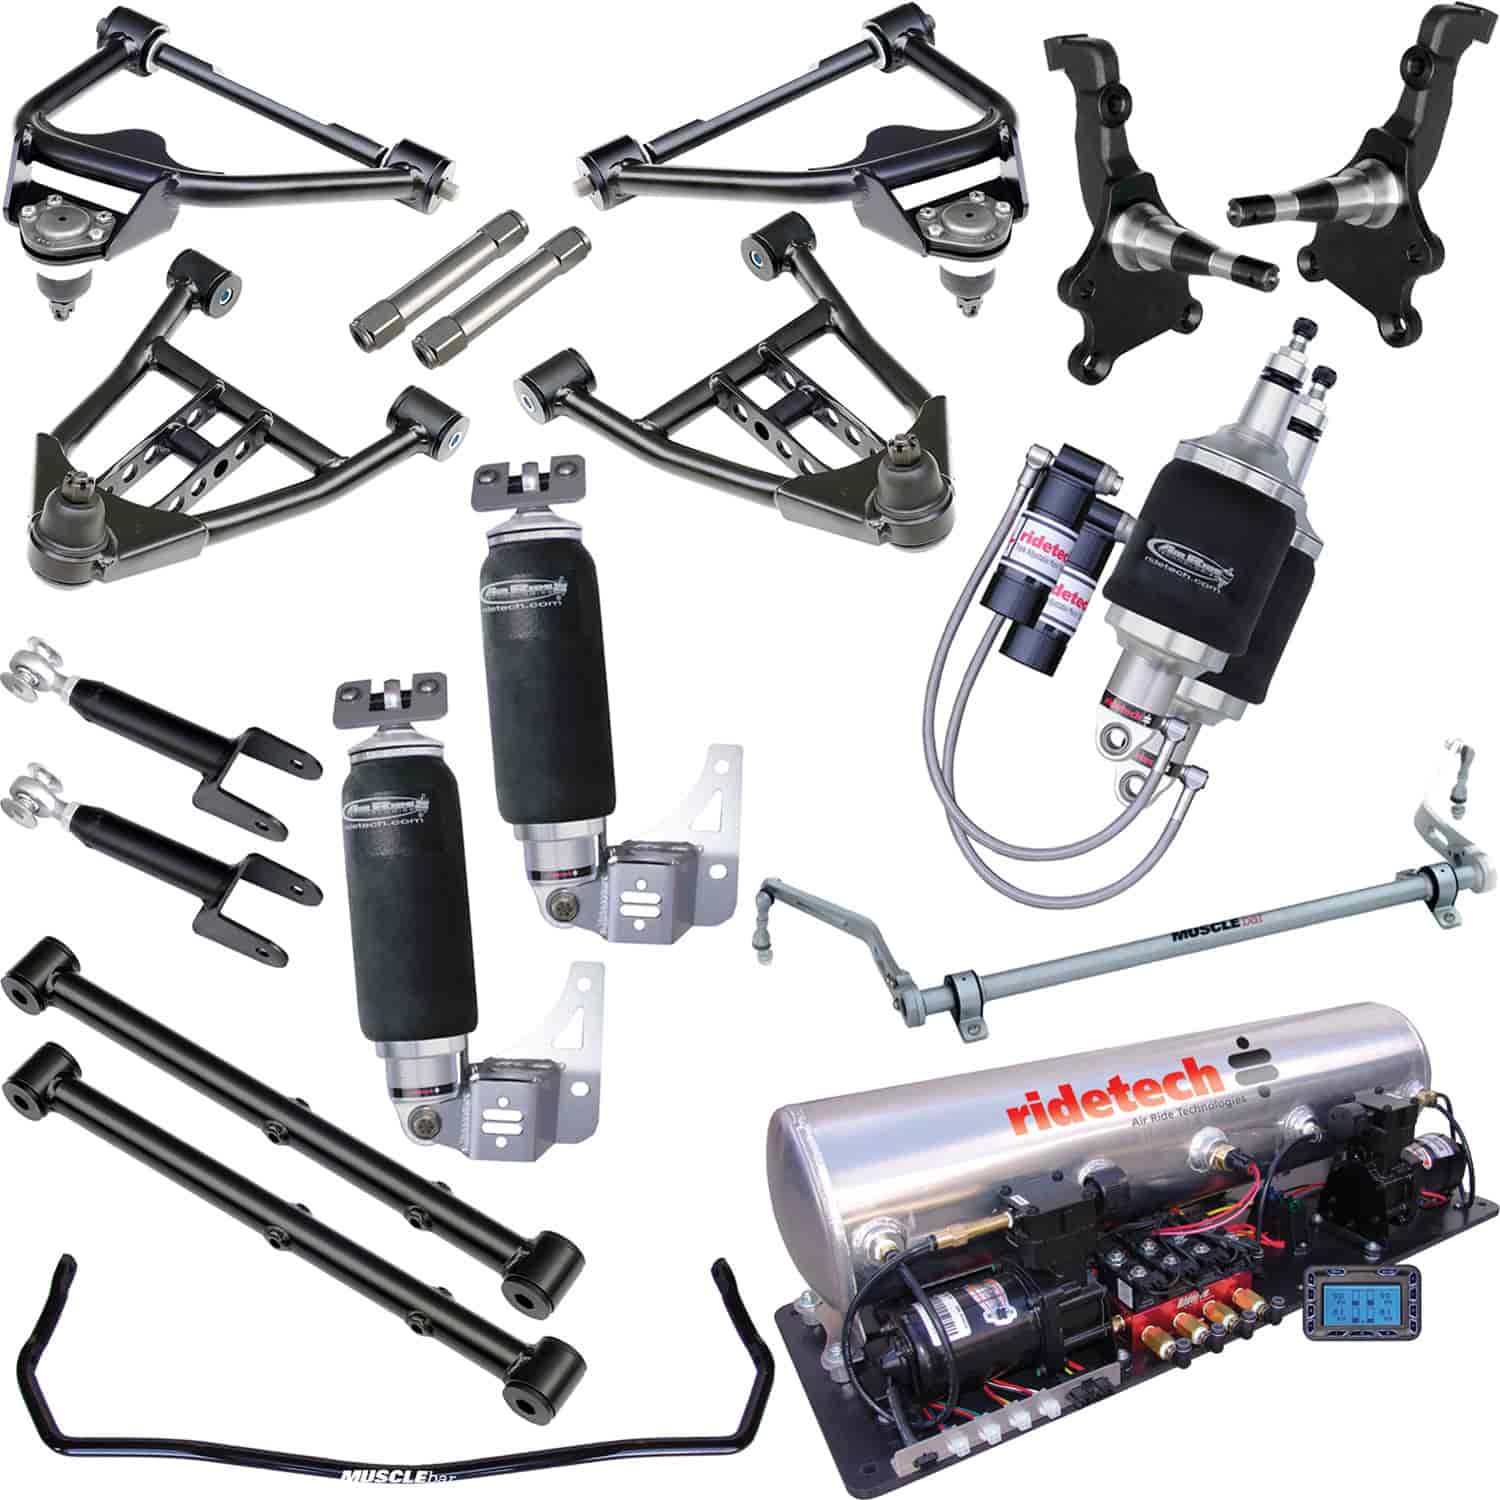 Ridetech 11230399 - Ridetech 1964-72 Chevelle/GTO/Cutlass/Skylark Air Suspension System